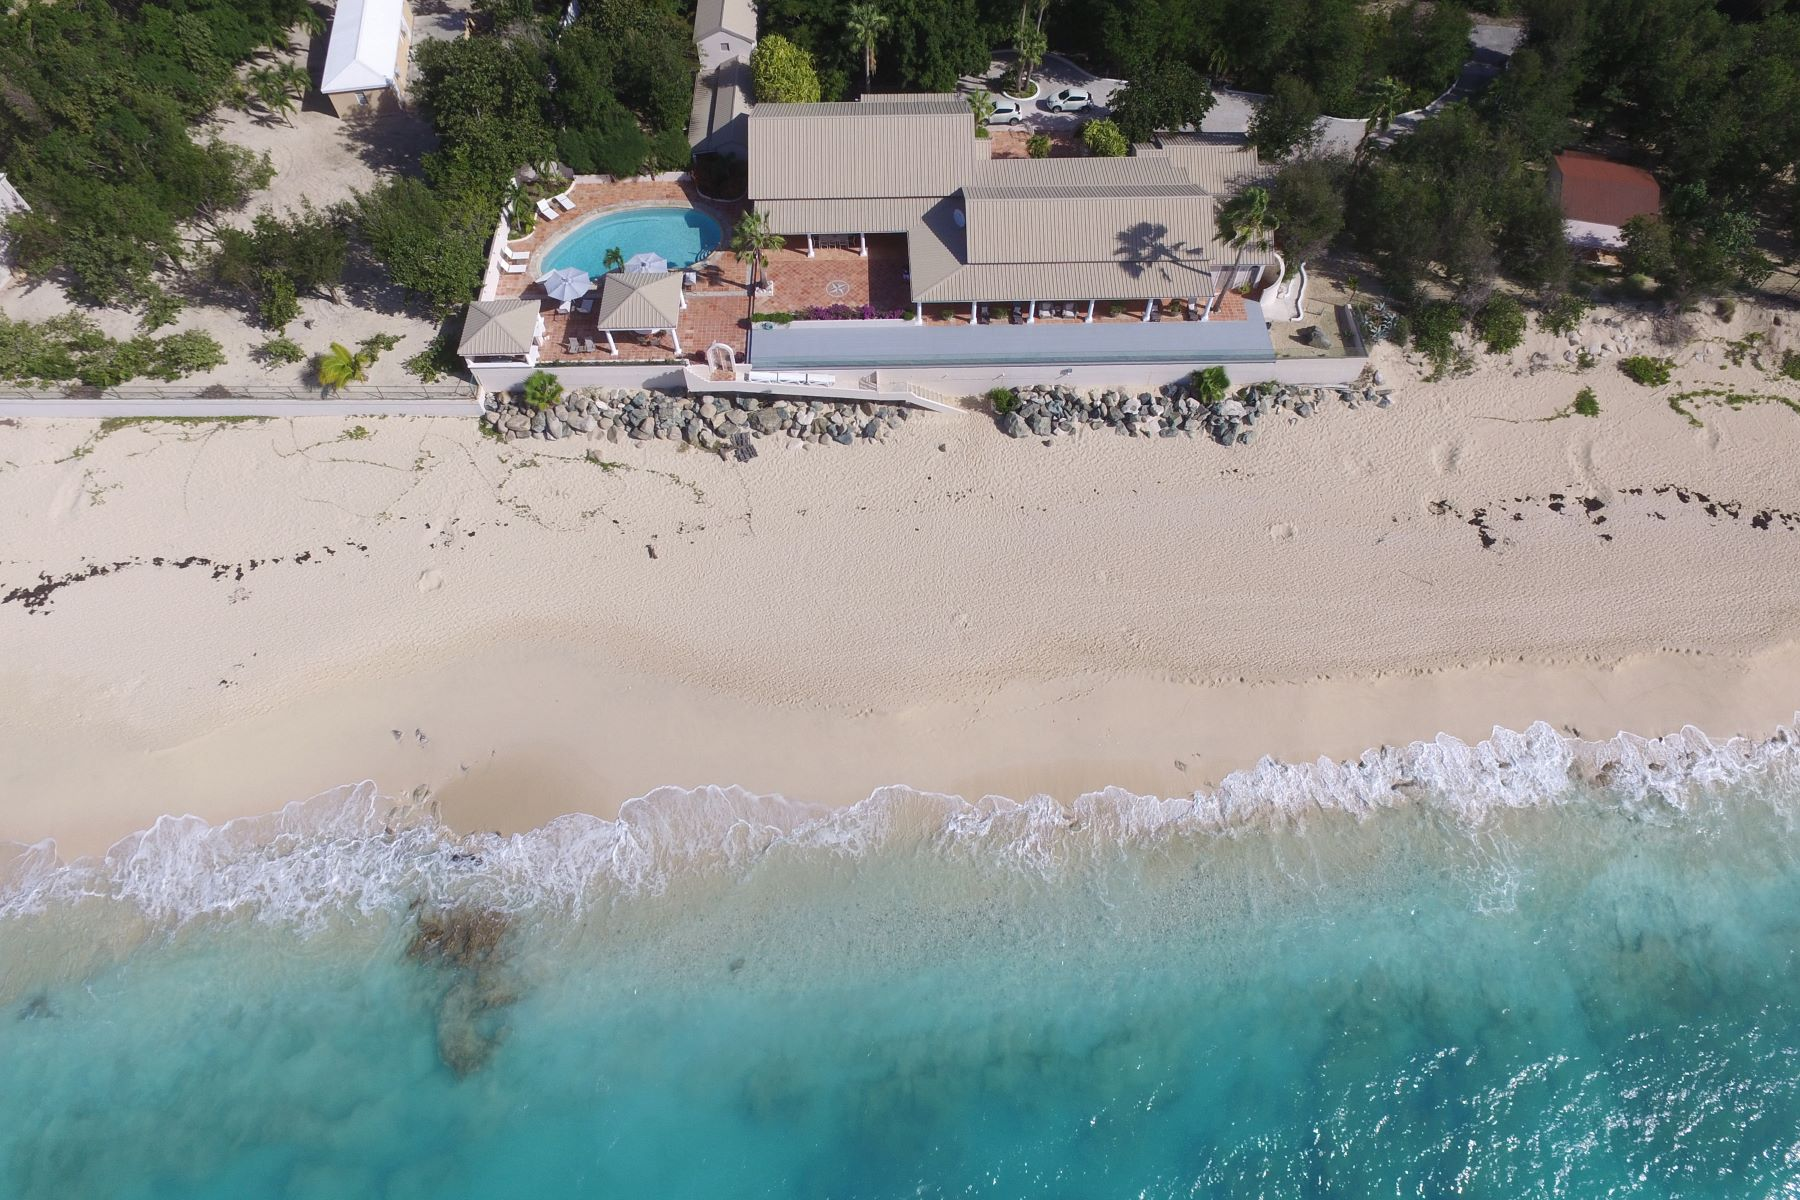 Single Family Home for Sale at Les Trois Jours Les Trois Jours Terres Basses, Cities In Saint Martin 97150 St. Martin